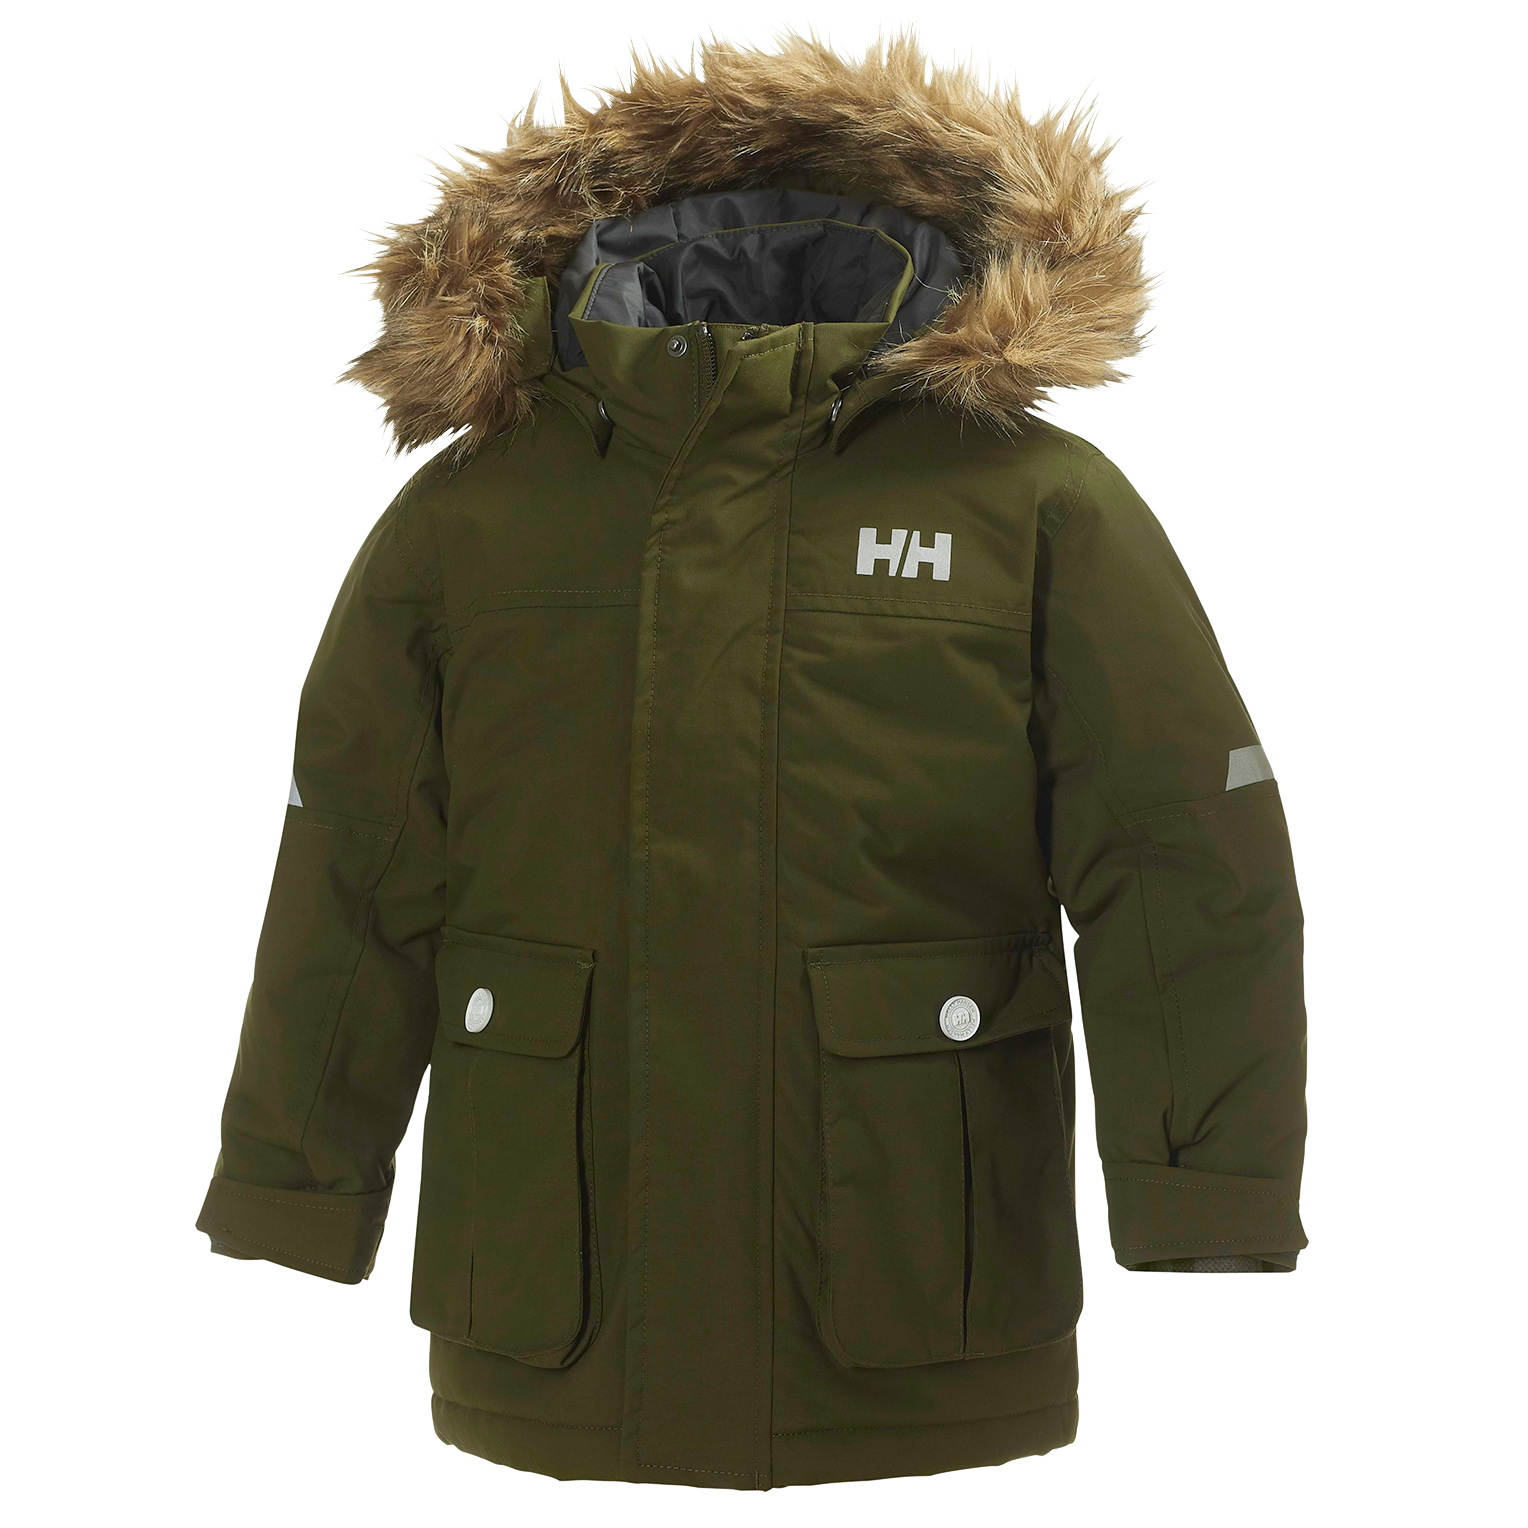 9cec917ad K LEGACY PARKA - Kids - Jackets - Helly Hansen Official Online Store ...